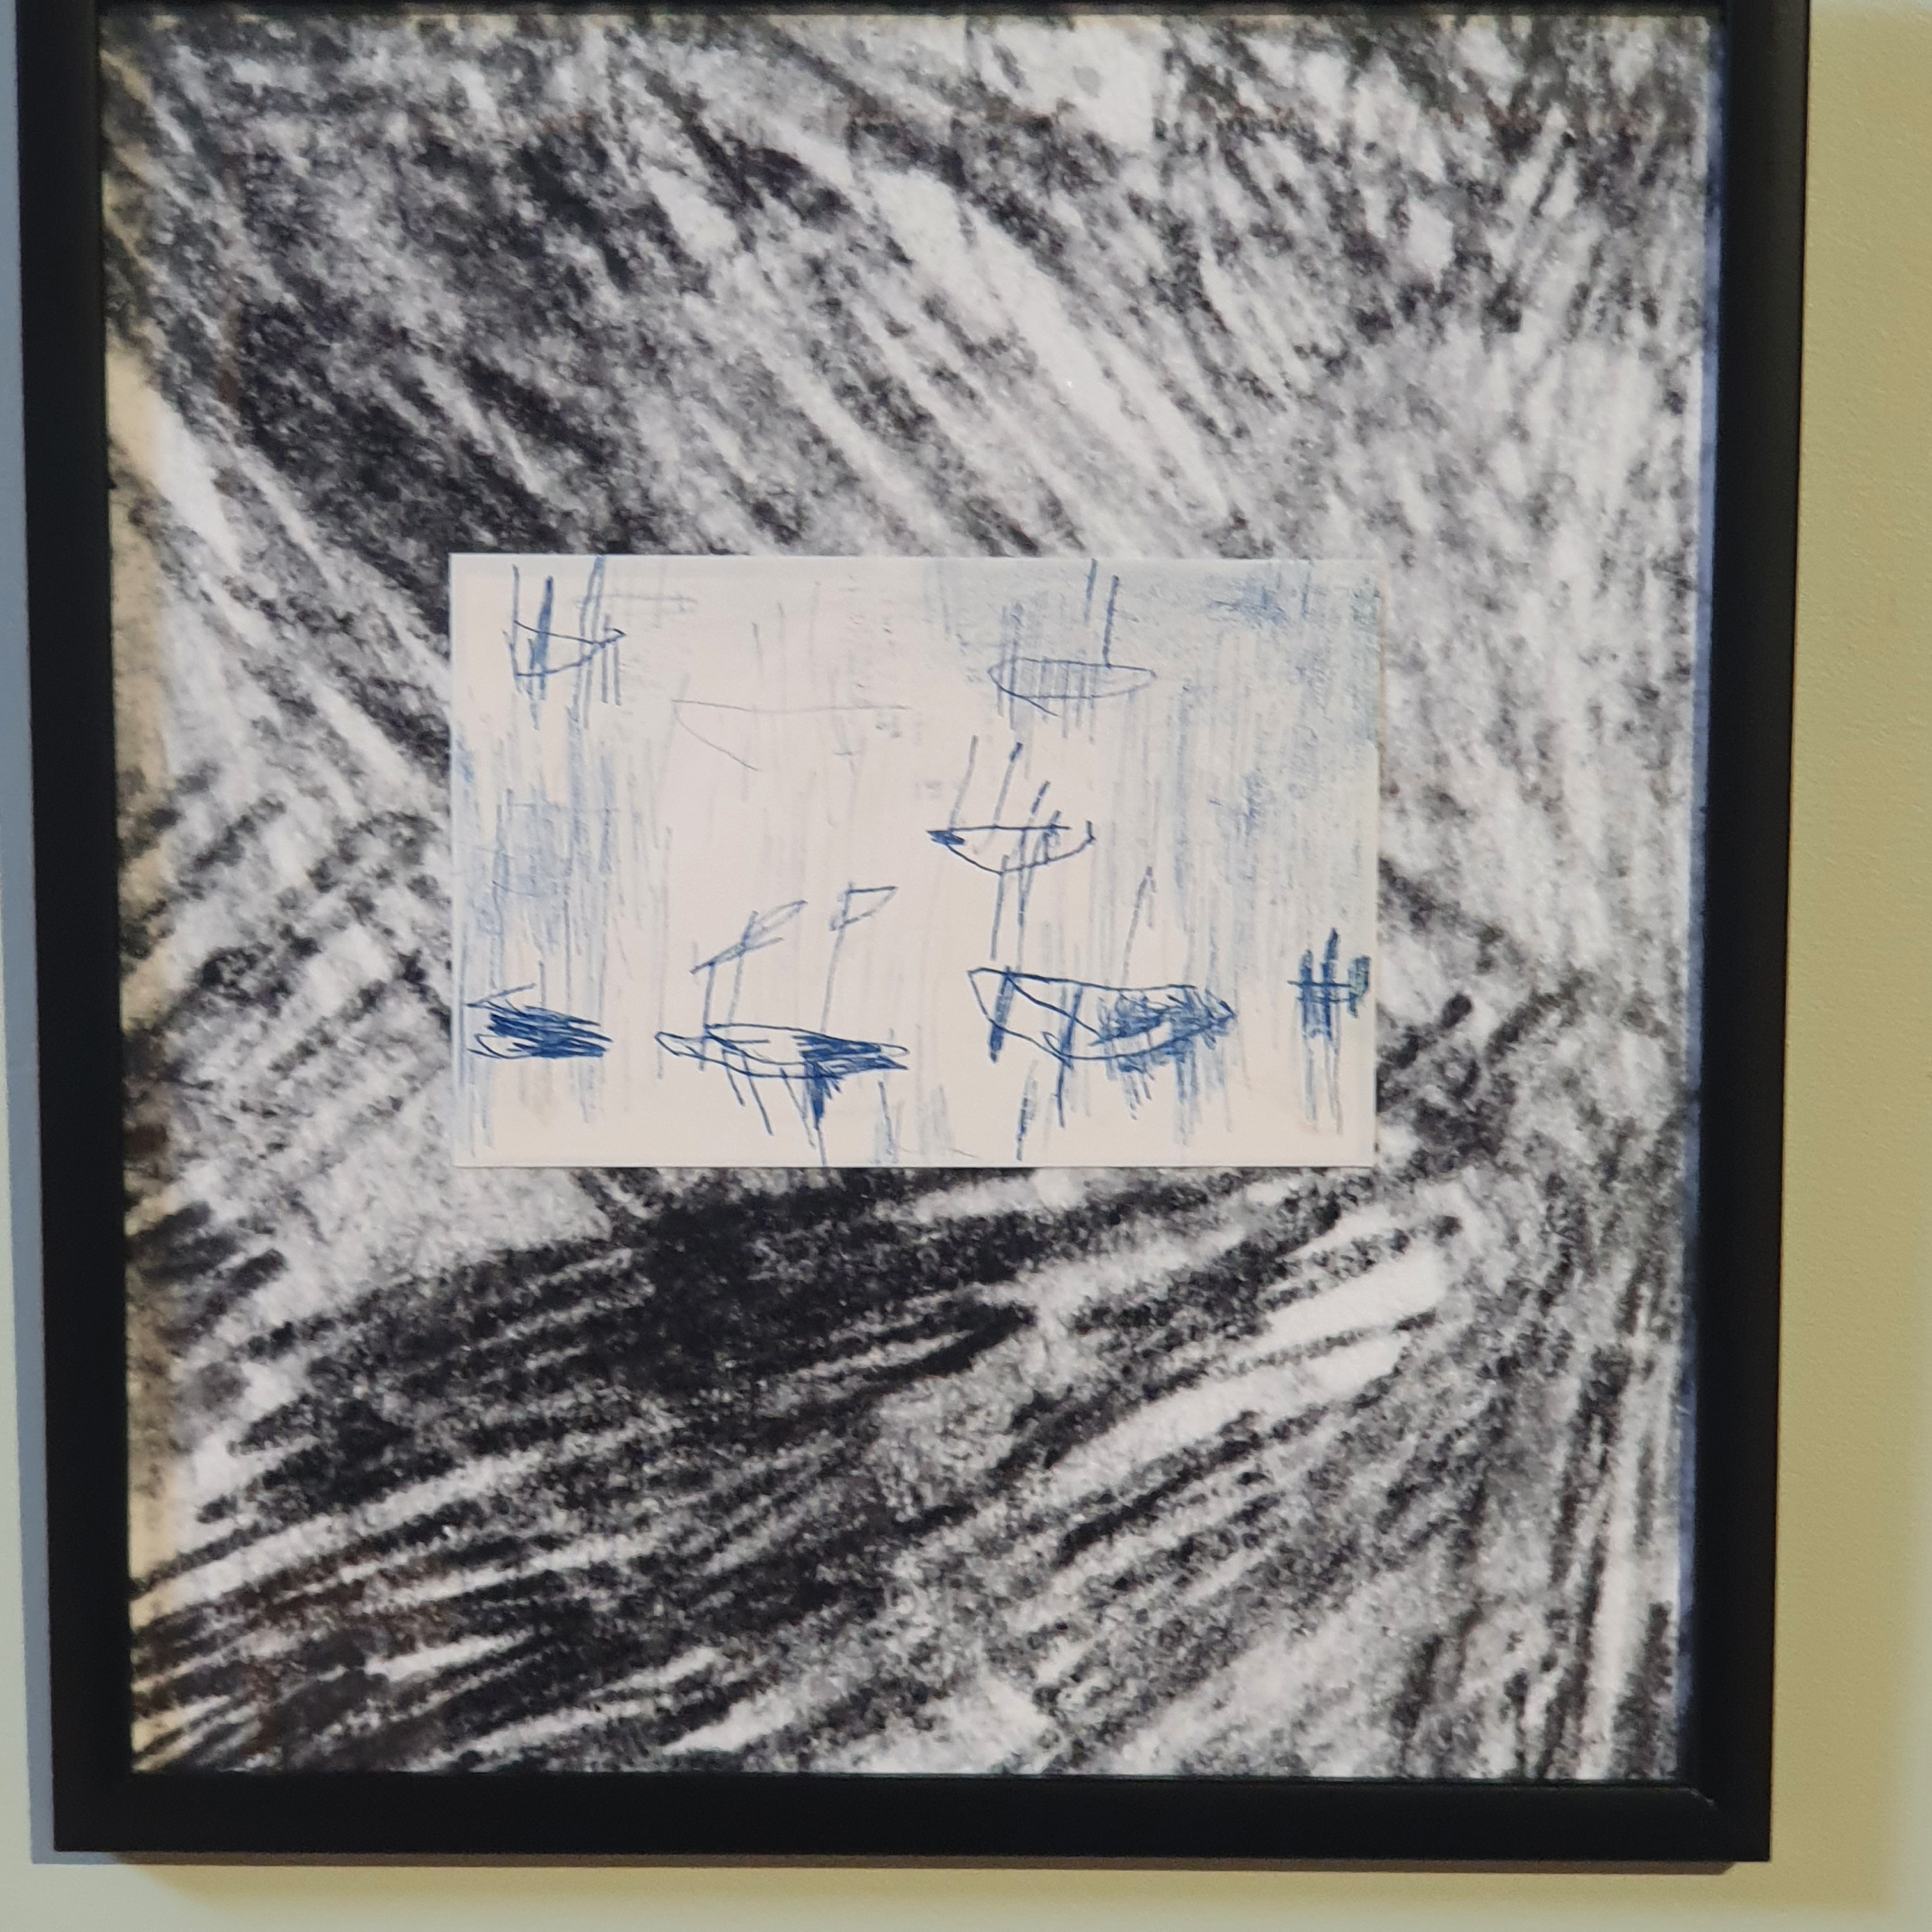 """Artwork from the """"Stump of Prometheus – Stay together"""" exhibition in a black frame"""